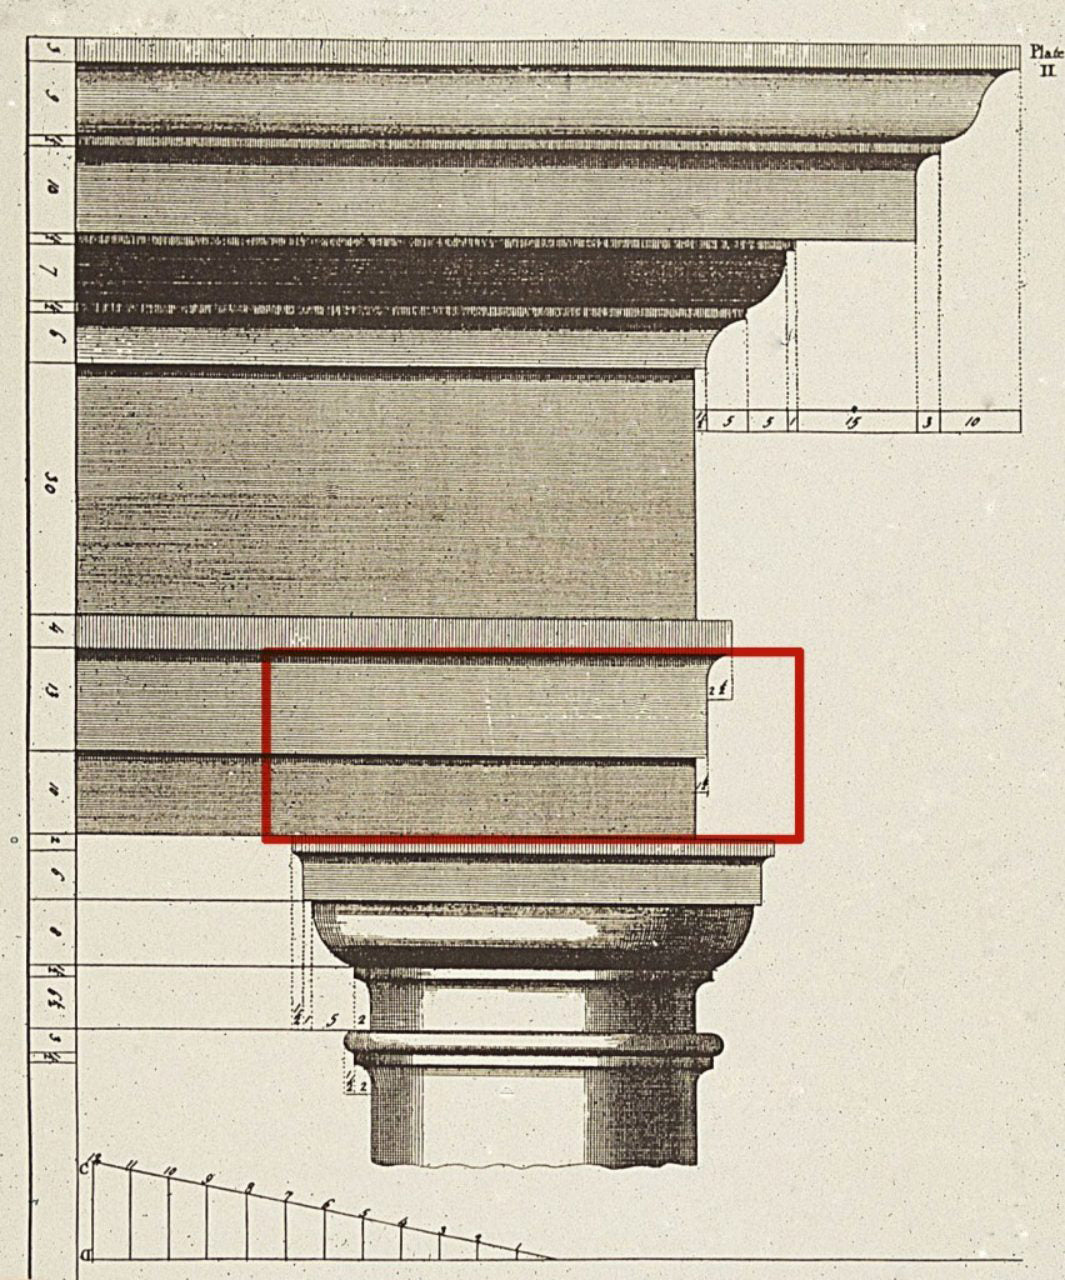 Architrave Illustrated Example - Glossary Image from Brockwell Incorporated